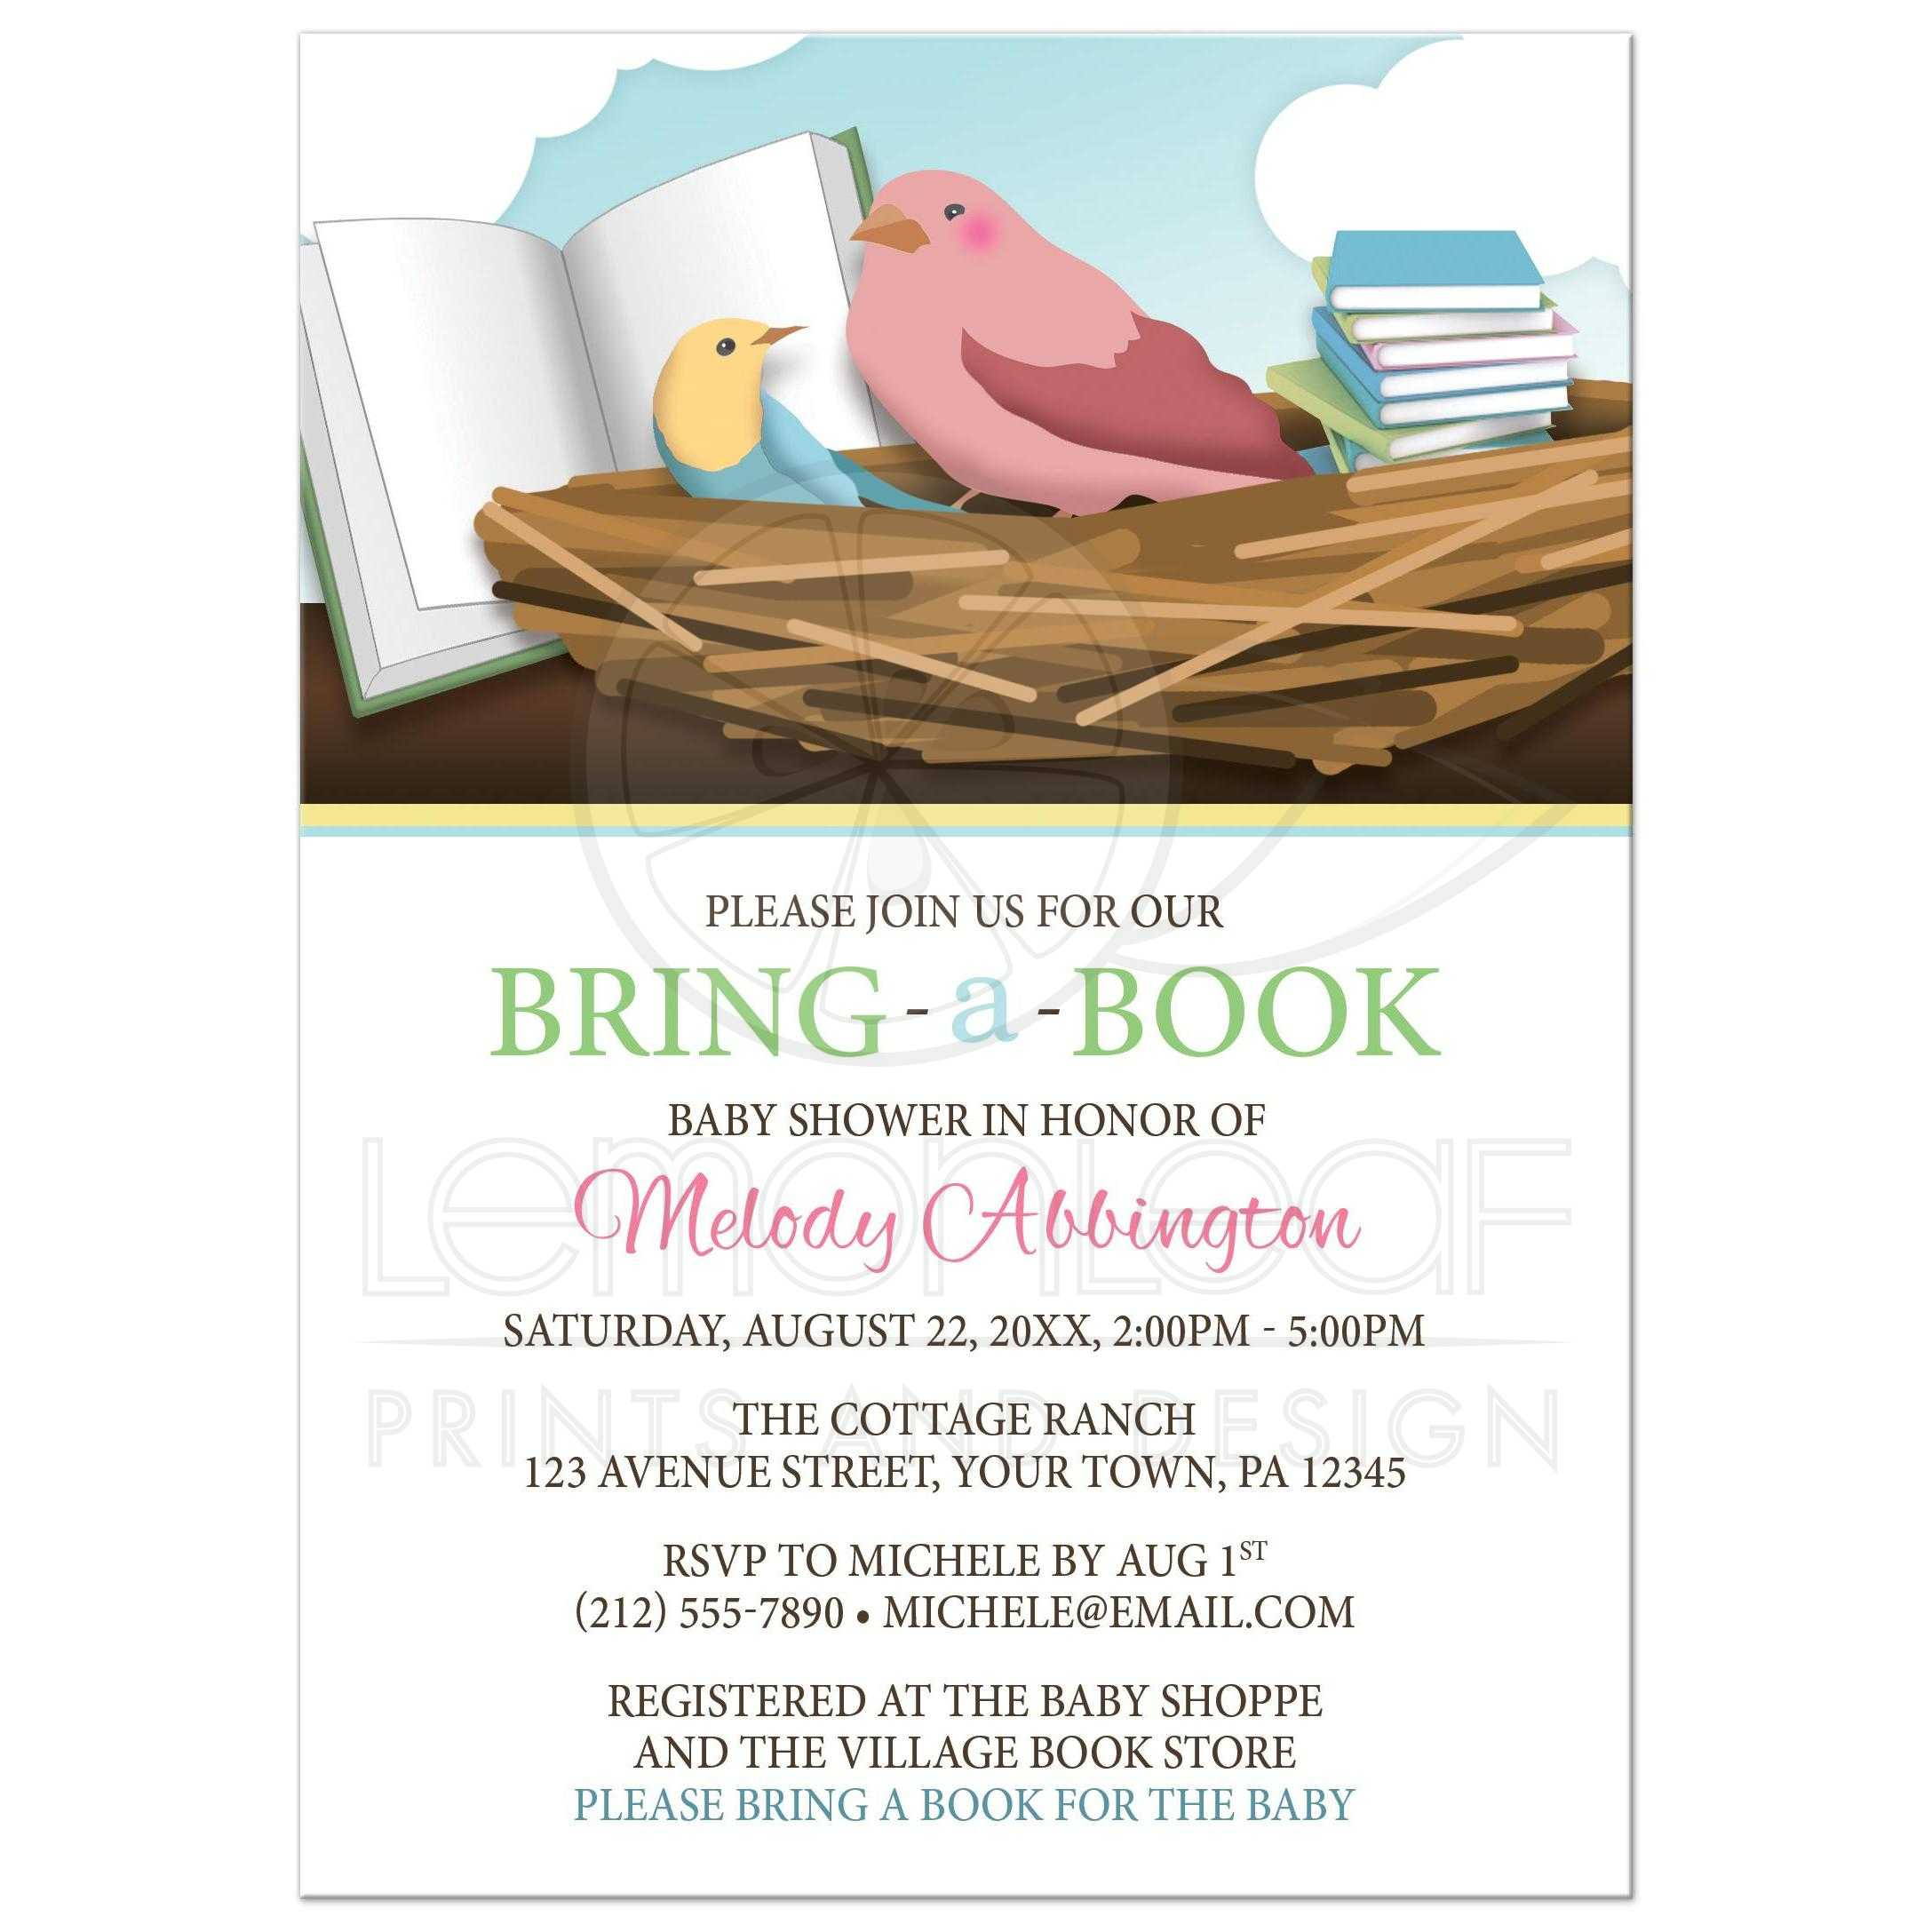 Exceptional Baby Shower Invitations   Bird Nest Bring A Book ...